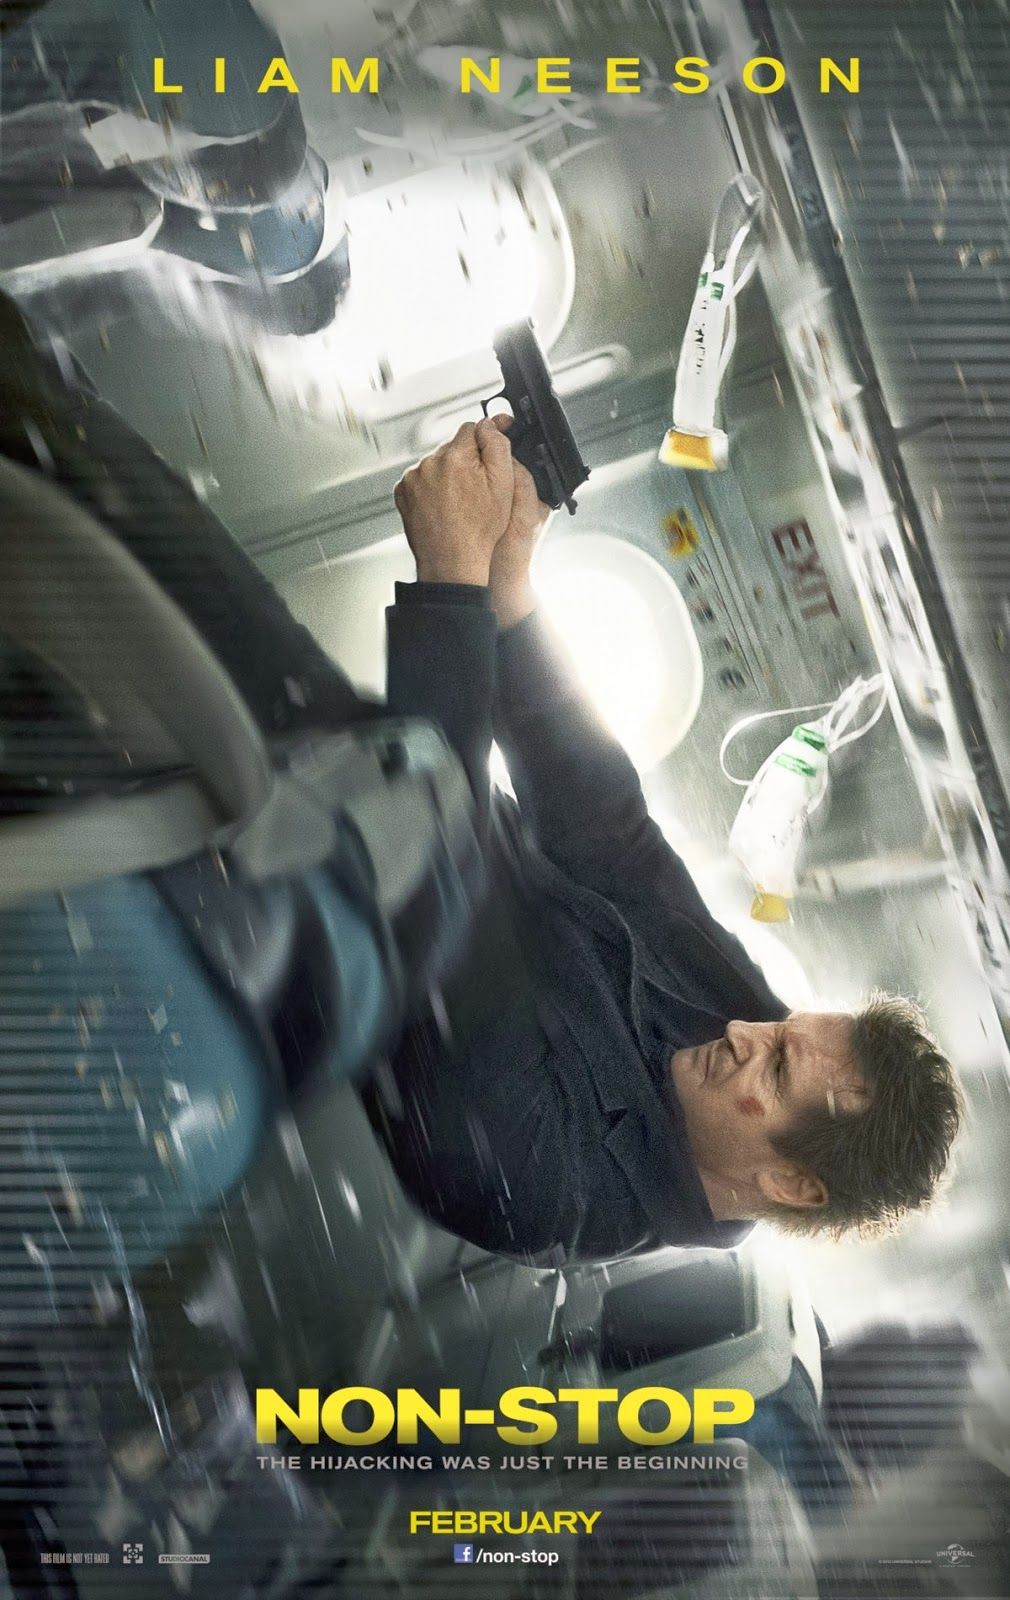 Non-stop movie review Liam Neeson